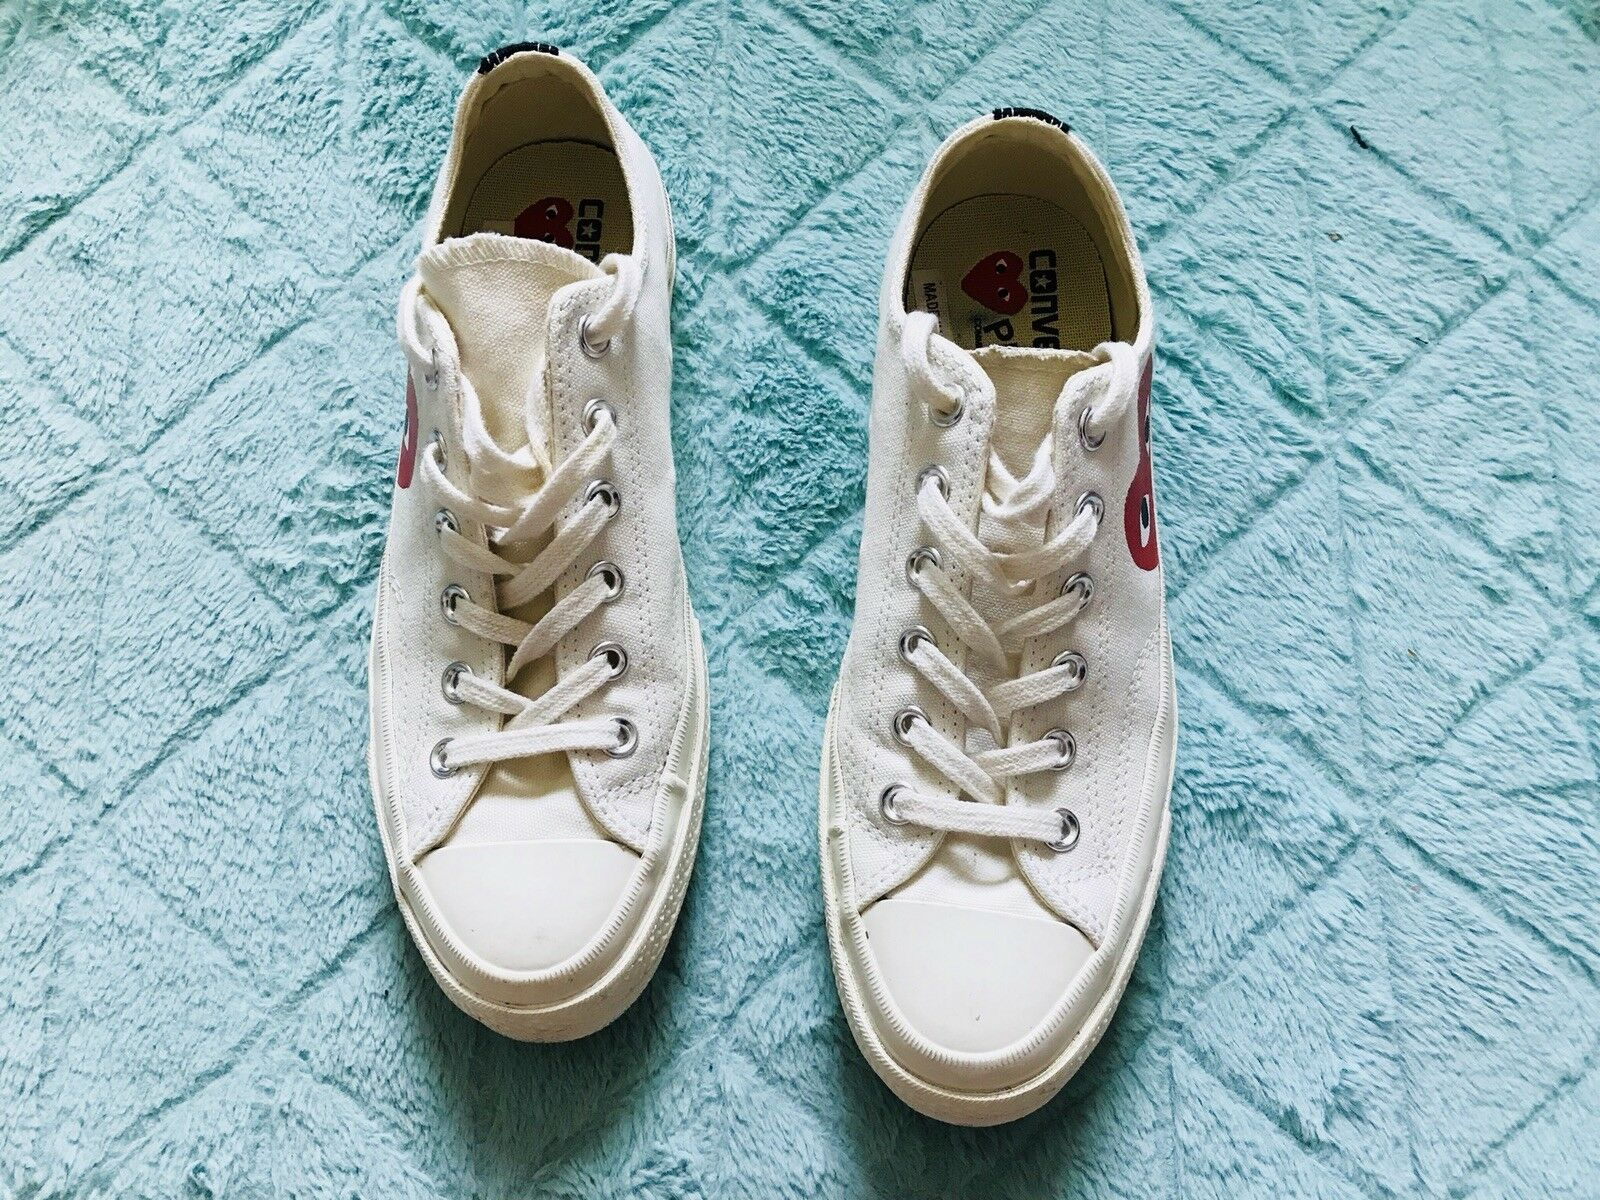 Converse Comme des Garcons CDG CDG CDG Play White Low Top 7 Uomo's/ 9 Donna's 727346